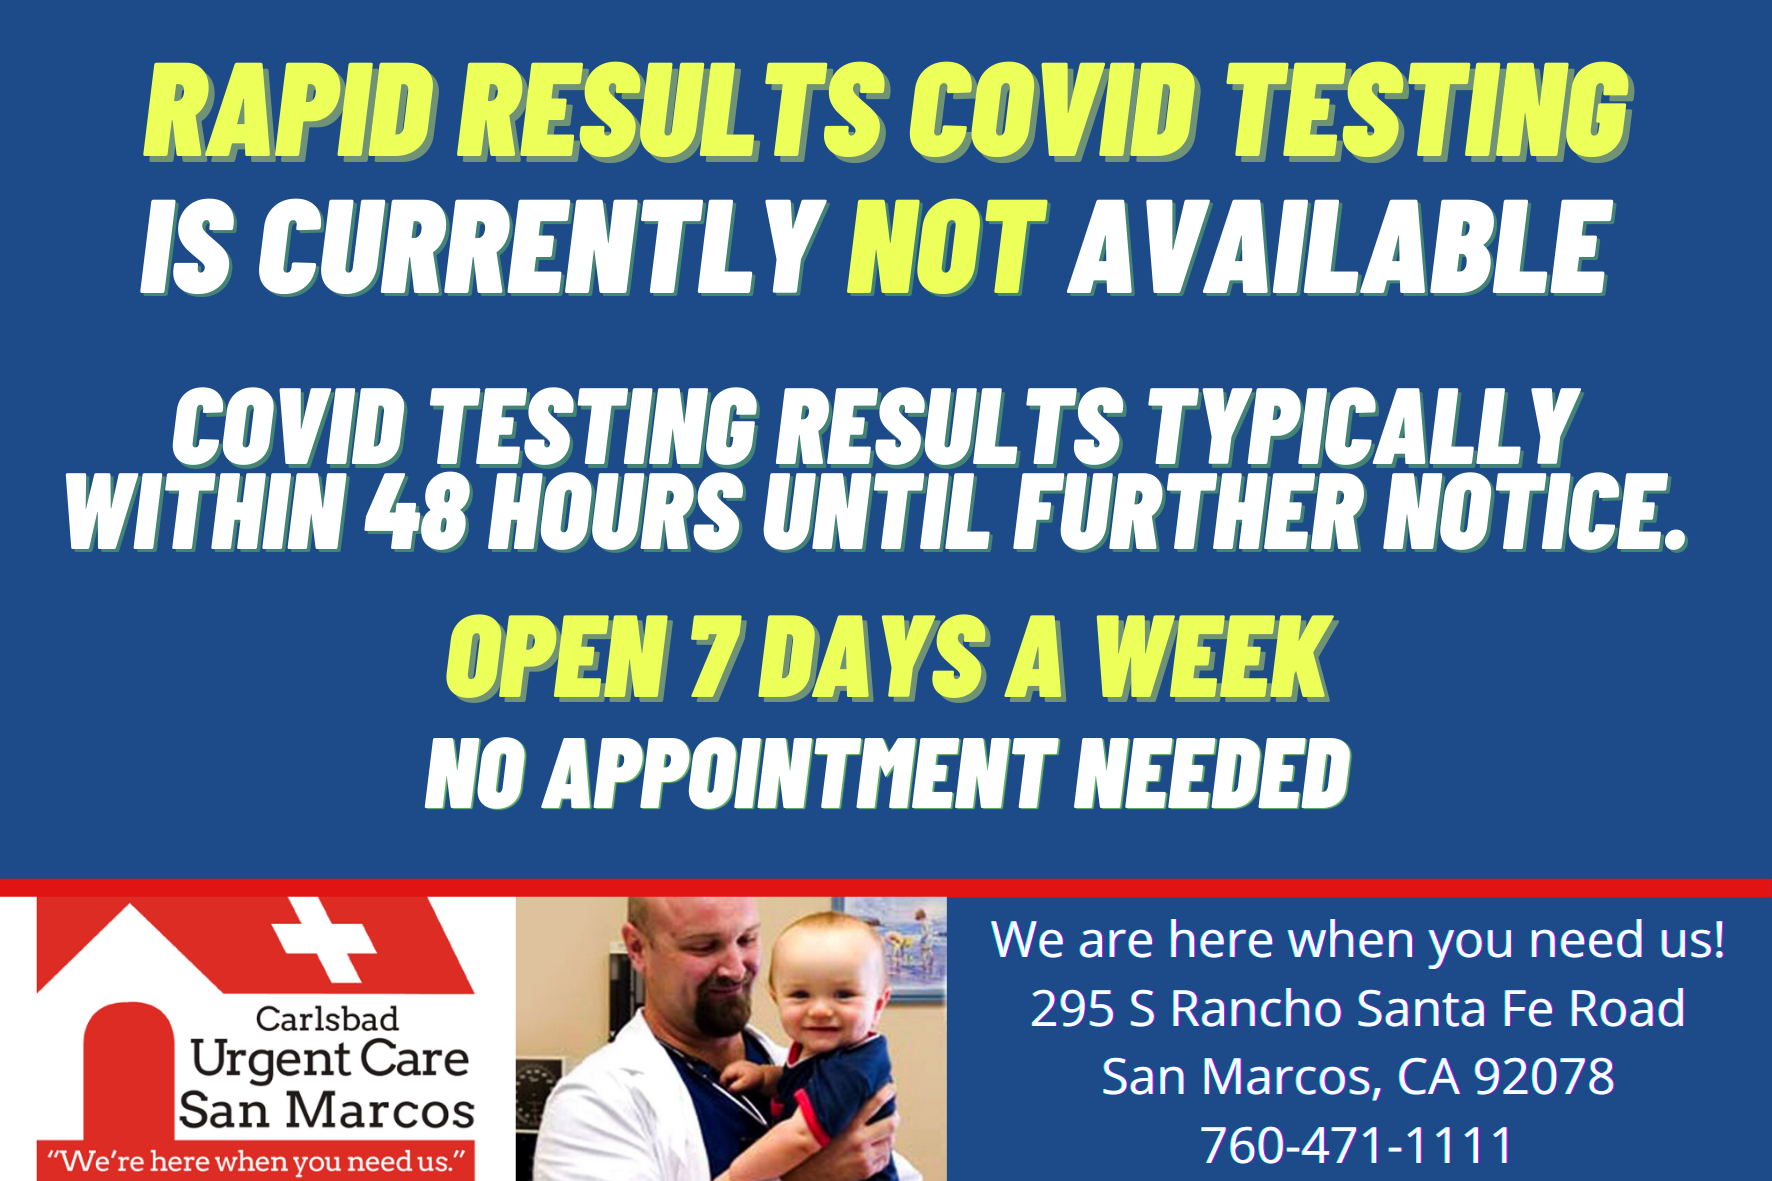 Copy of Yellow Rapid Results Covid Testing San Marcos Urgent Care Facebook Instagram